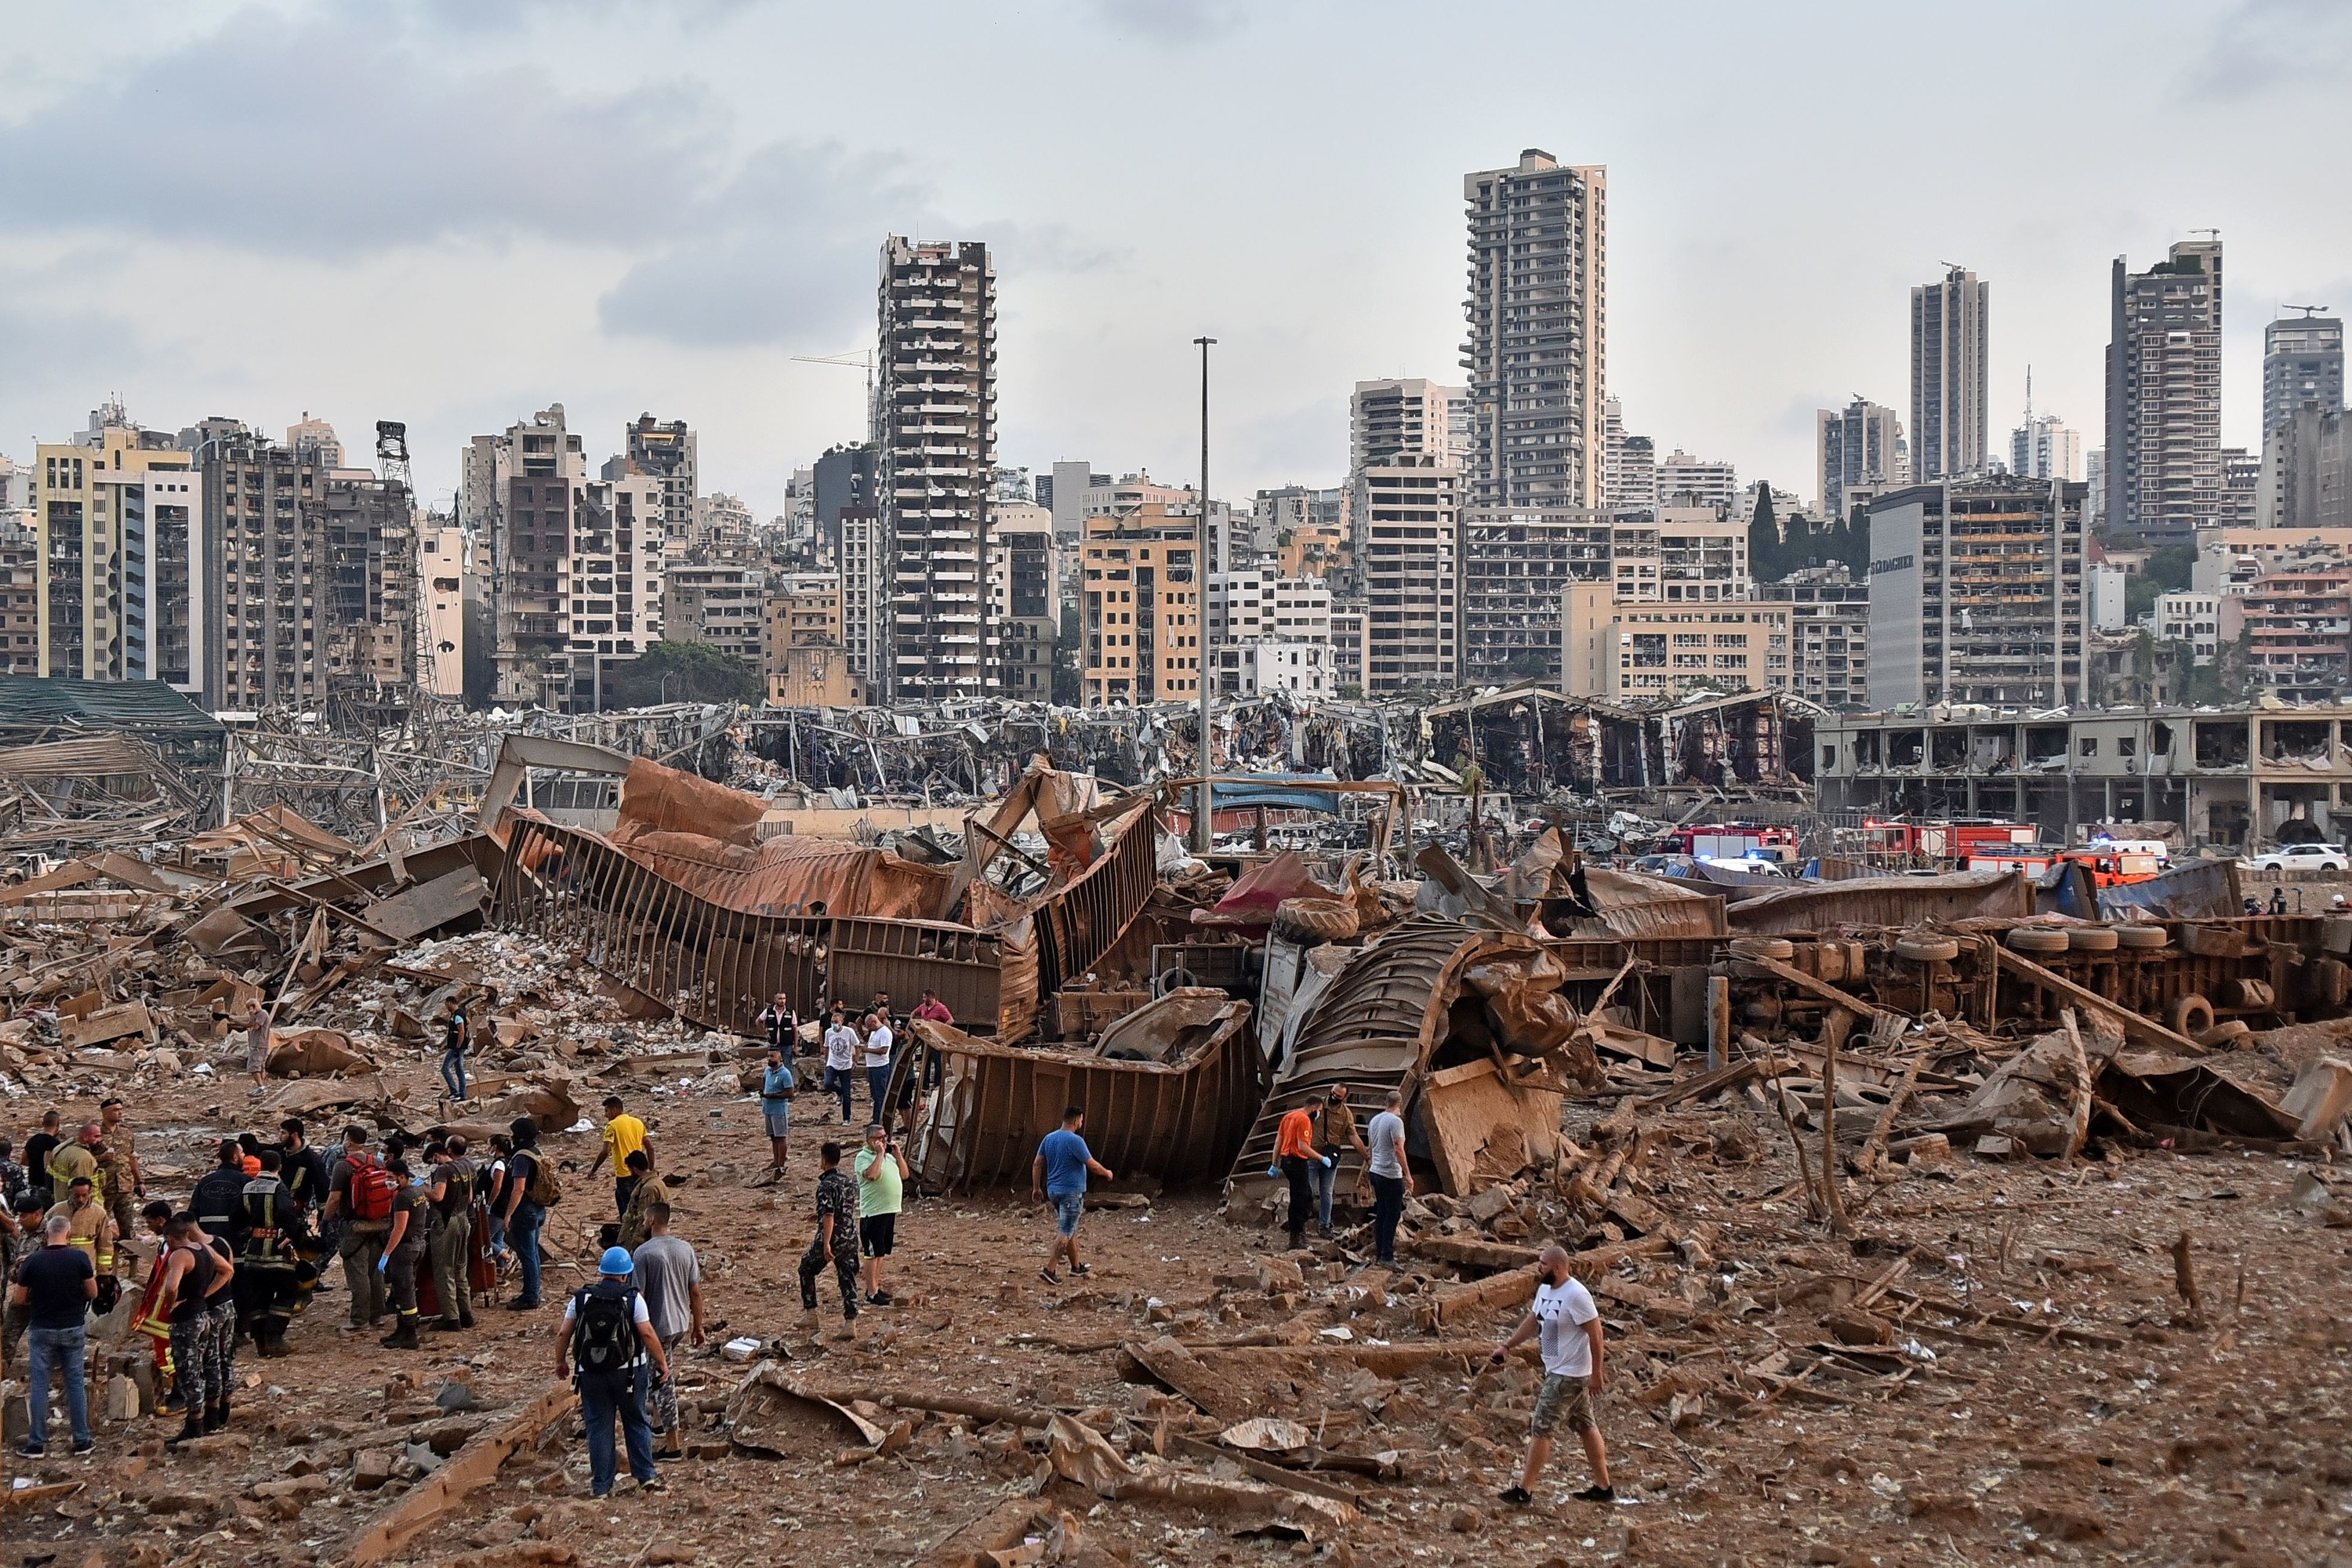 People walk around debris and twisted metal with heavily damaged high-rises in the background